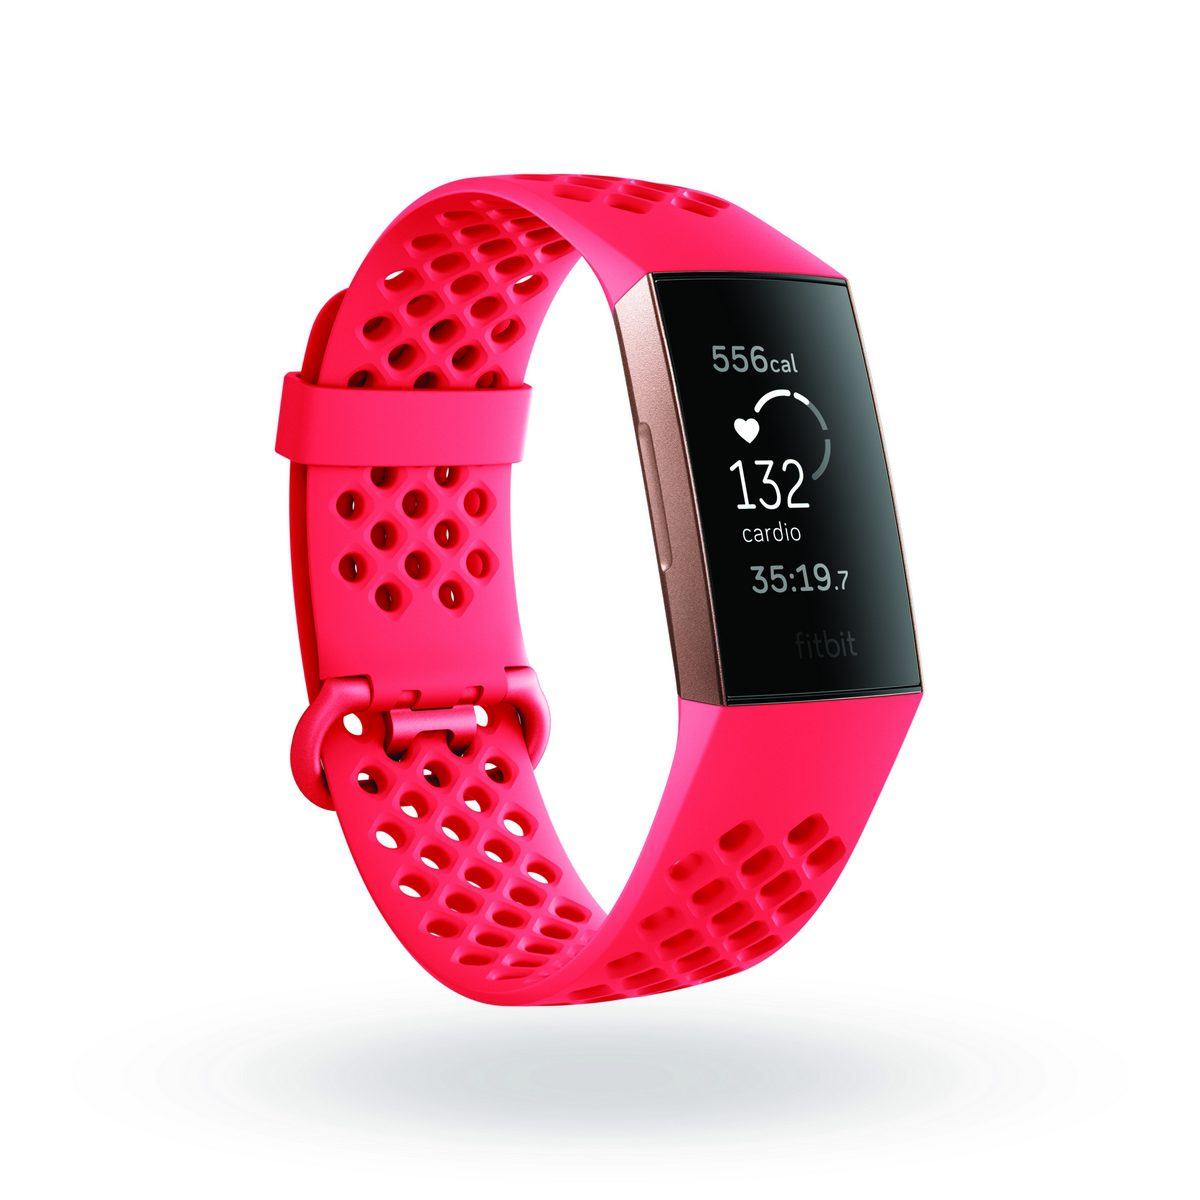 Fitbit Charge 3 quarter view showing cardio